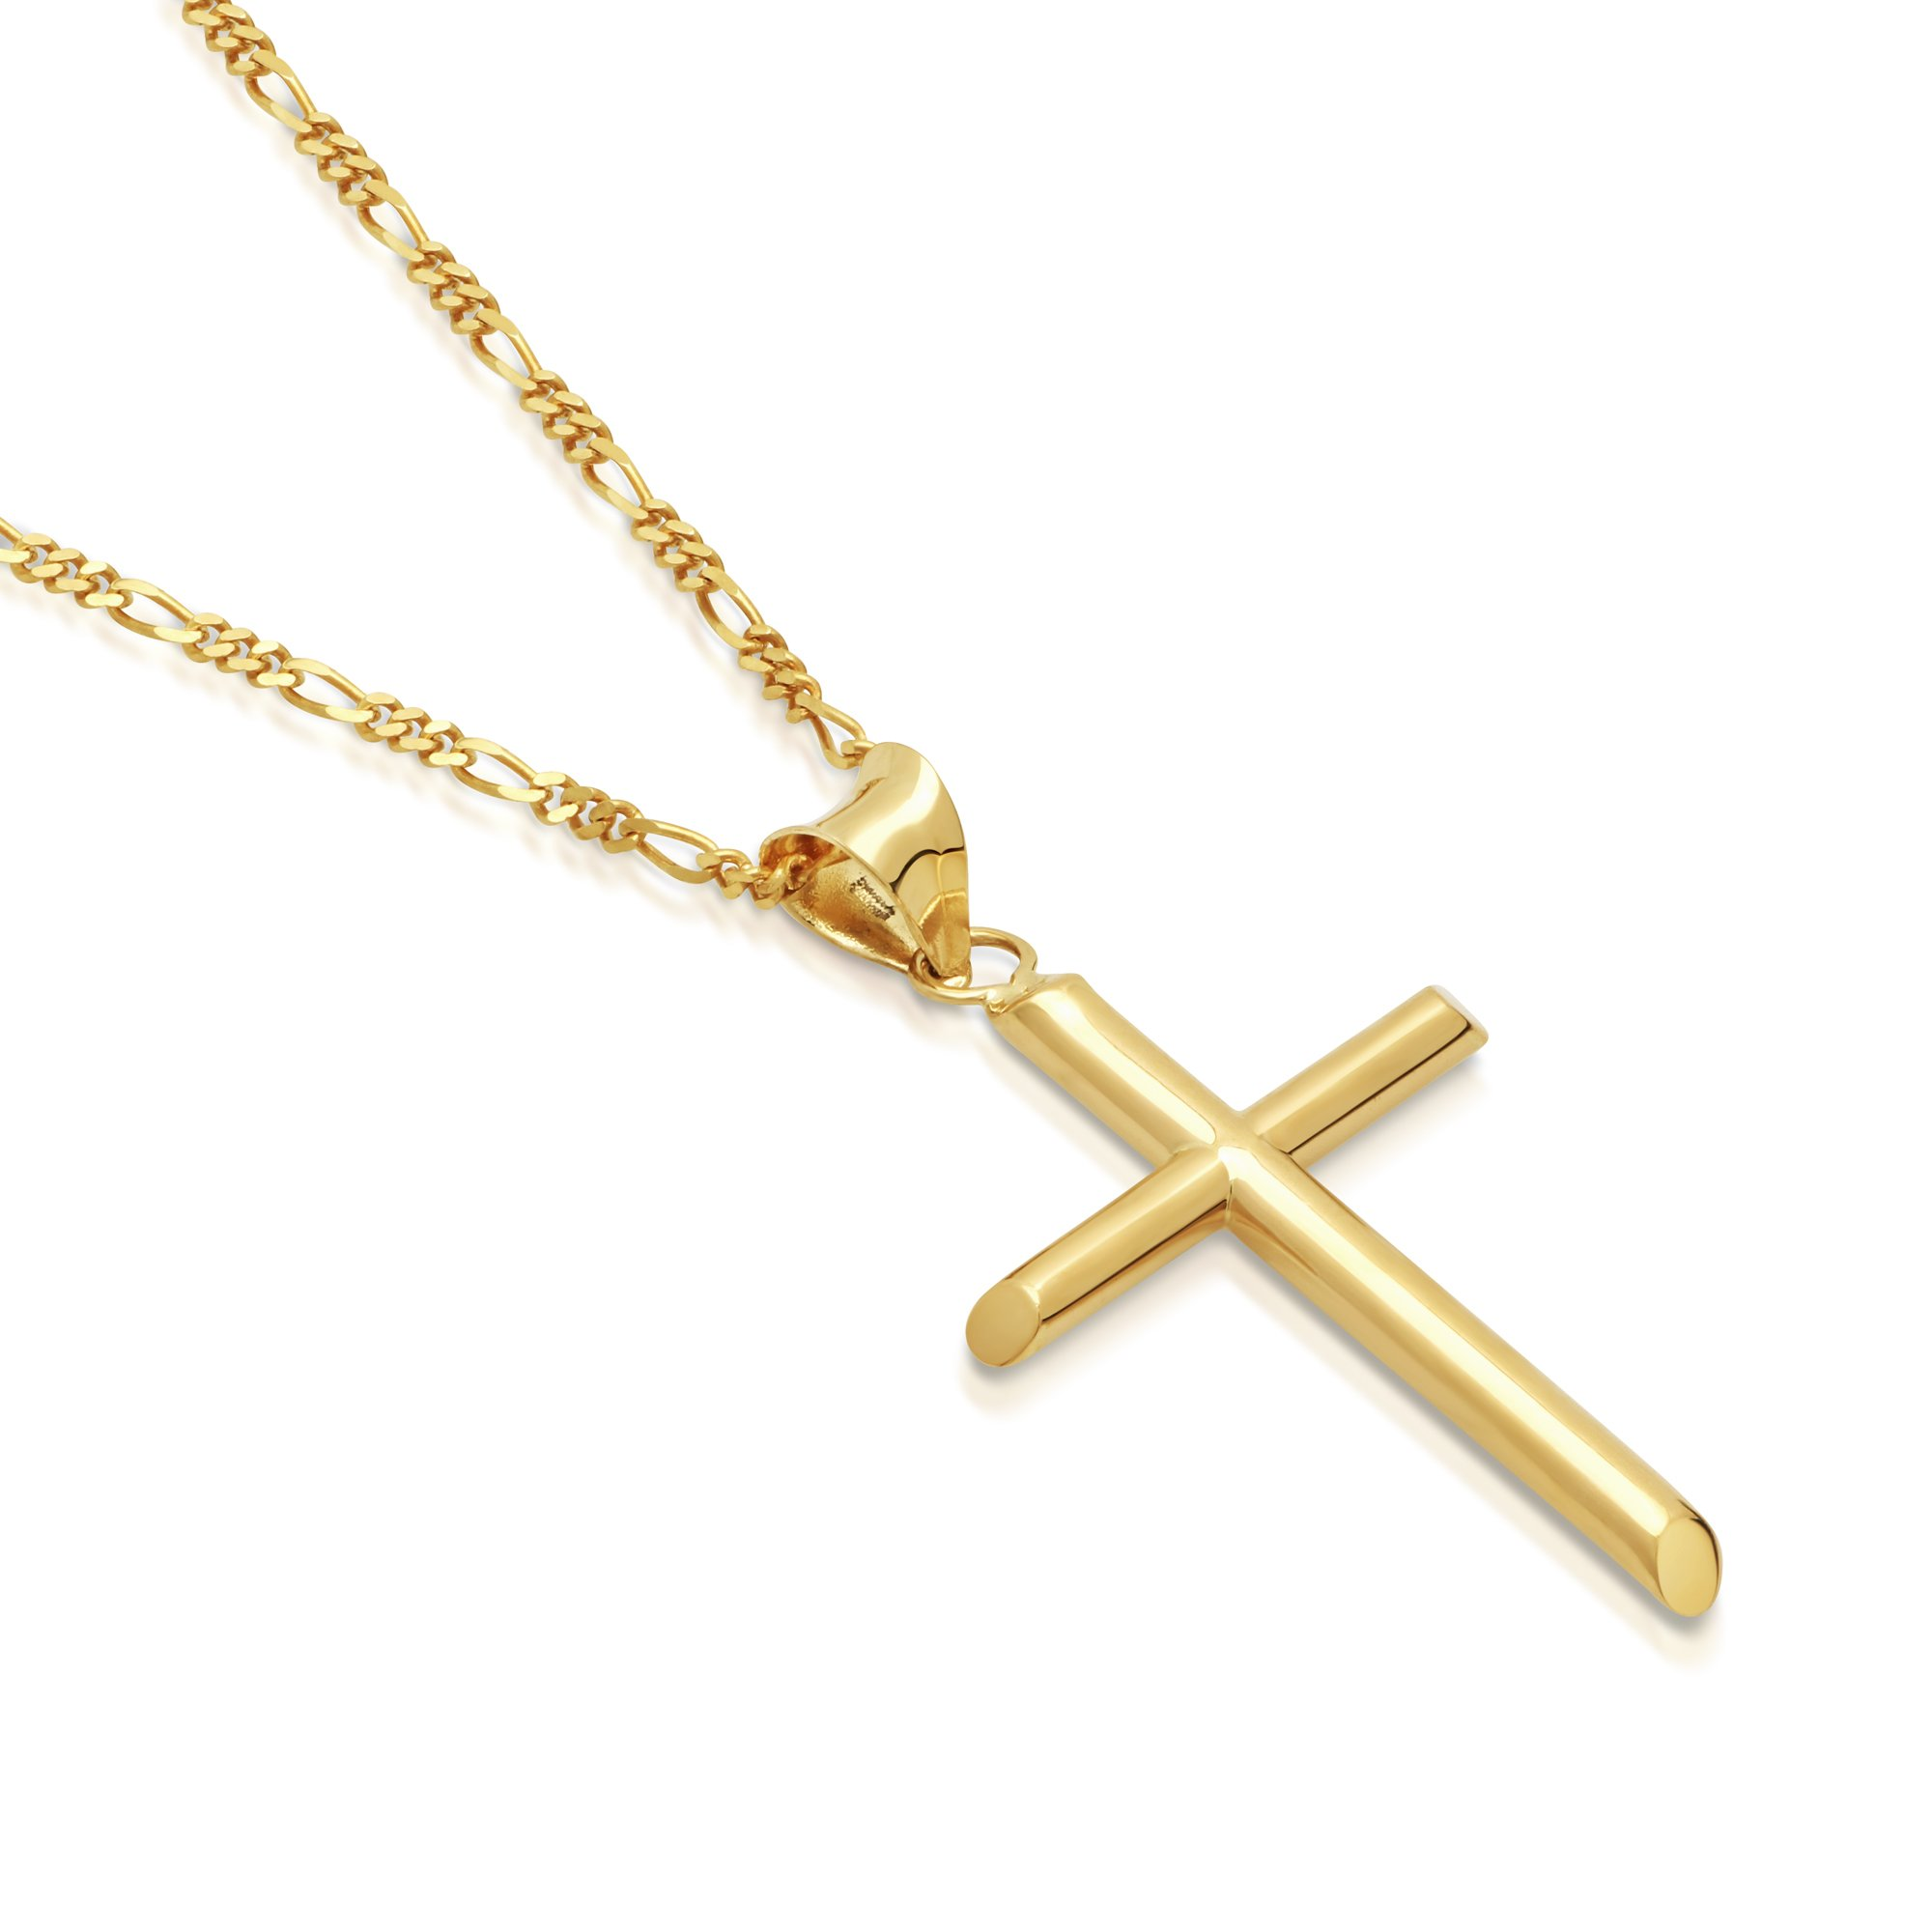 DTLA Solid 14K Gold Figaro Chain Cross Pendant Necklace - 20''